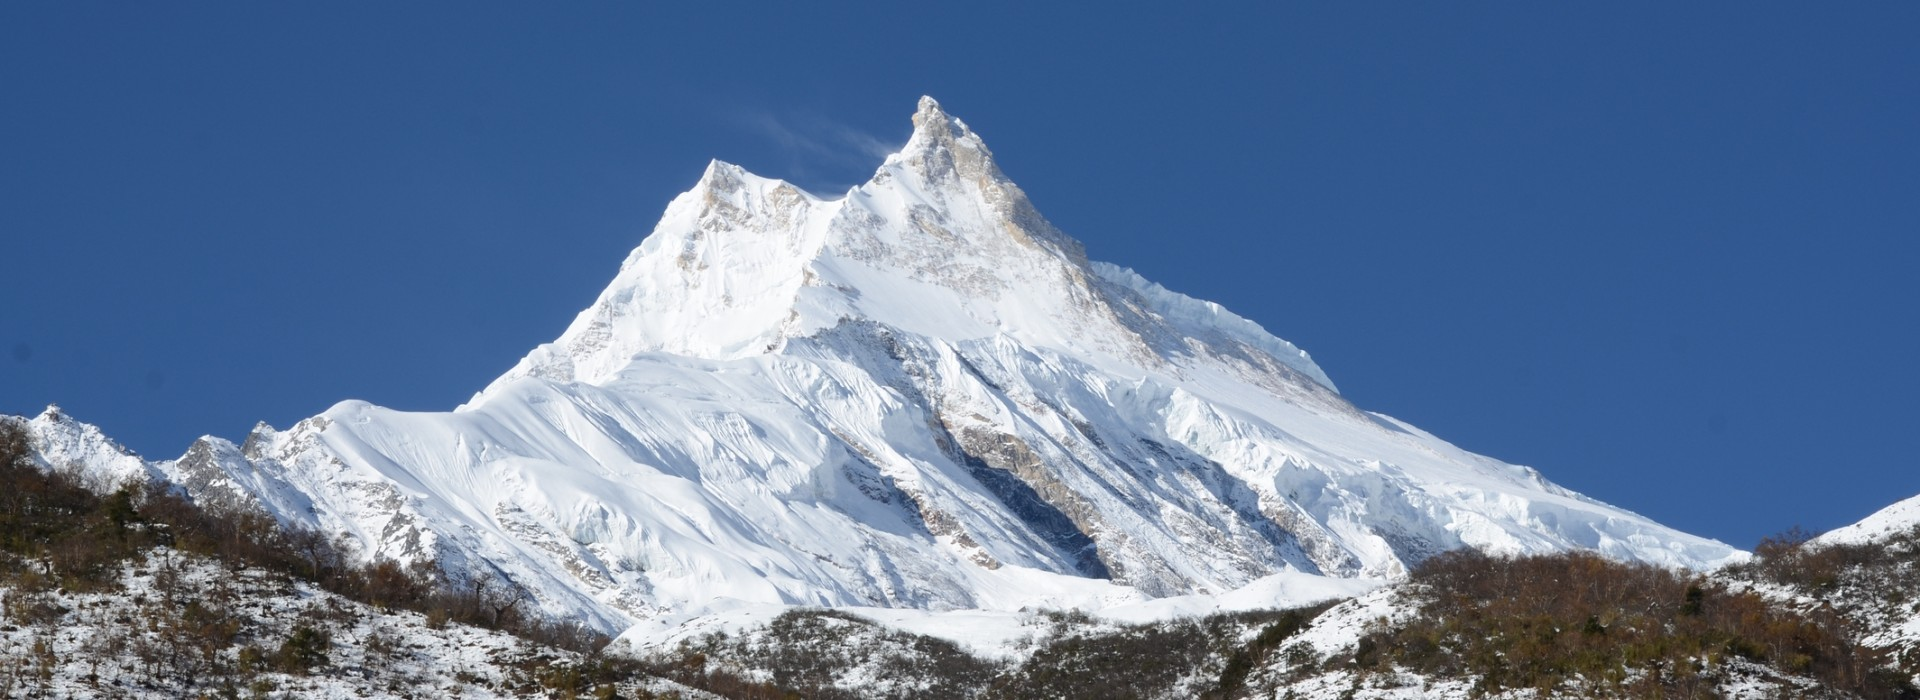 Mt. Manaslu. Expedition 8th highest mountain in the world